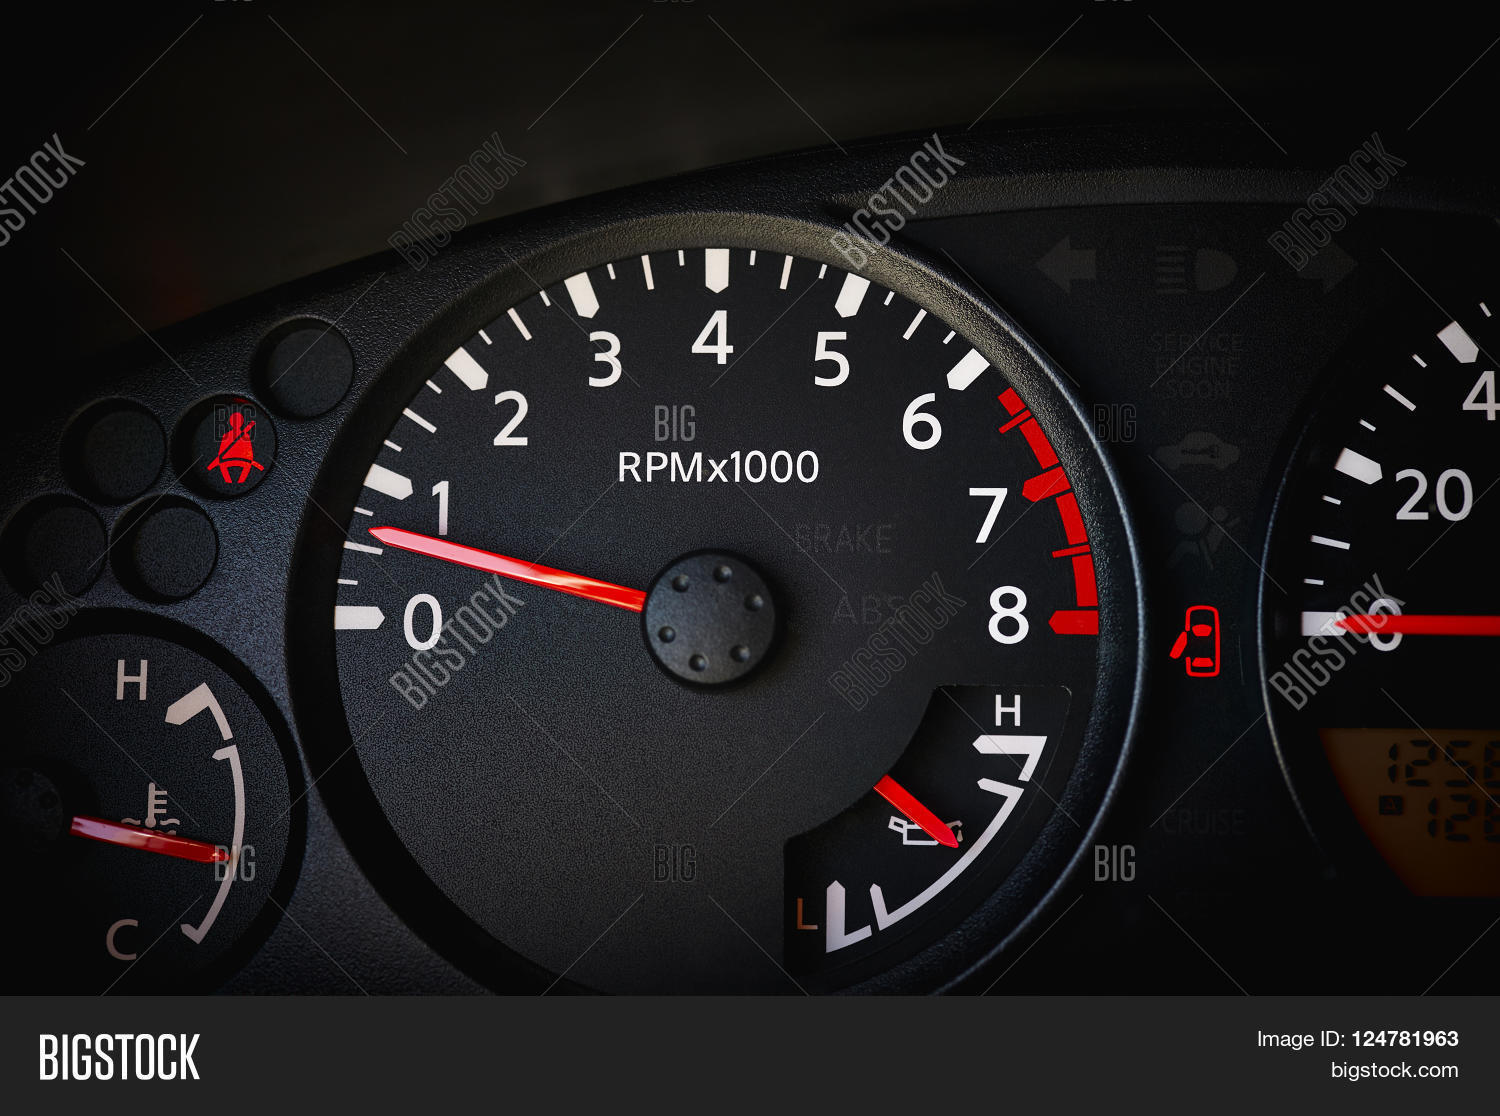 Dashboard Of A Car Showing Tachometer Partial Sdometer Temperature Gauge Battery Seat Belt Warning Light